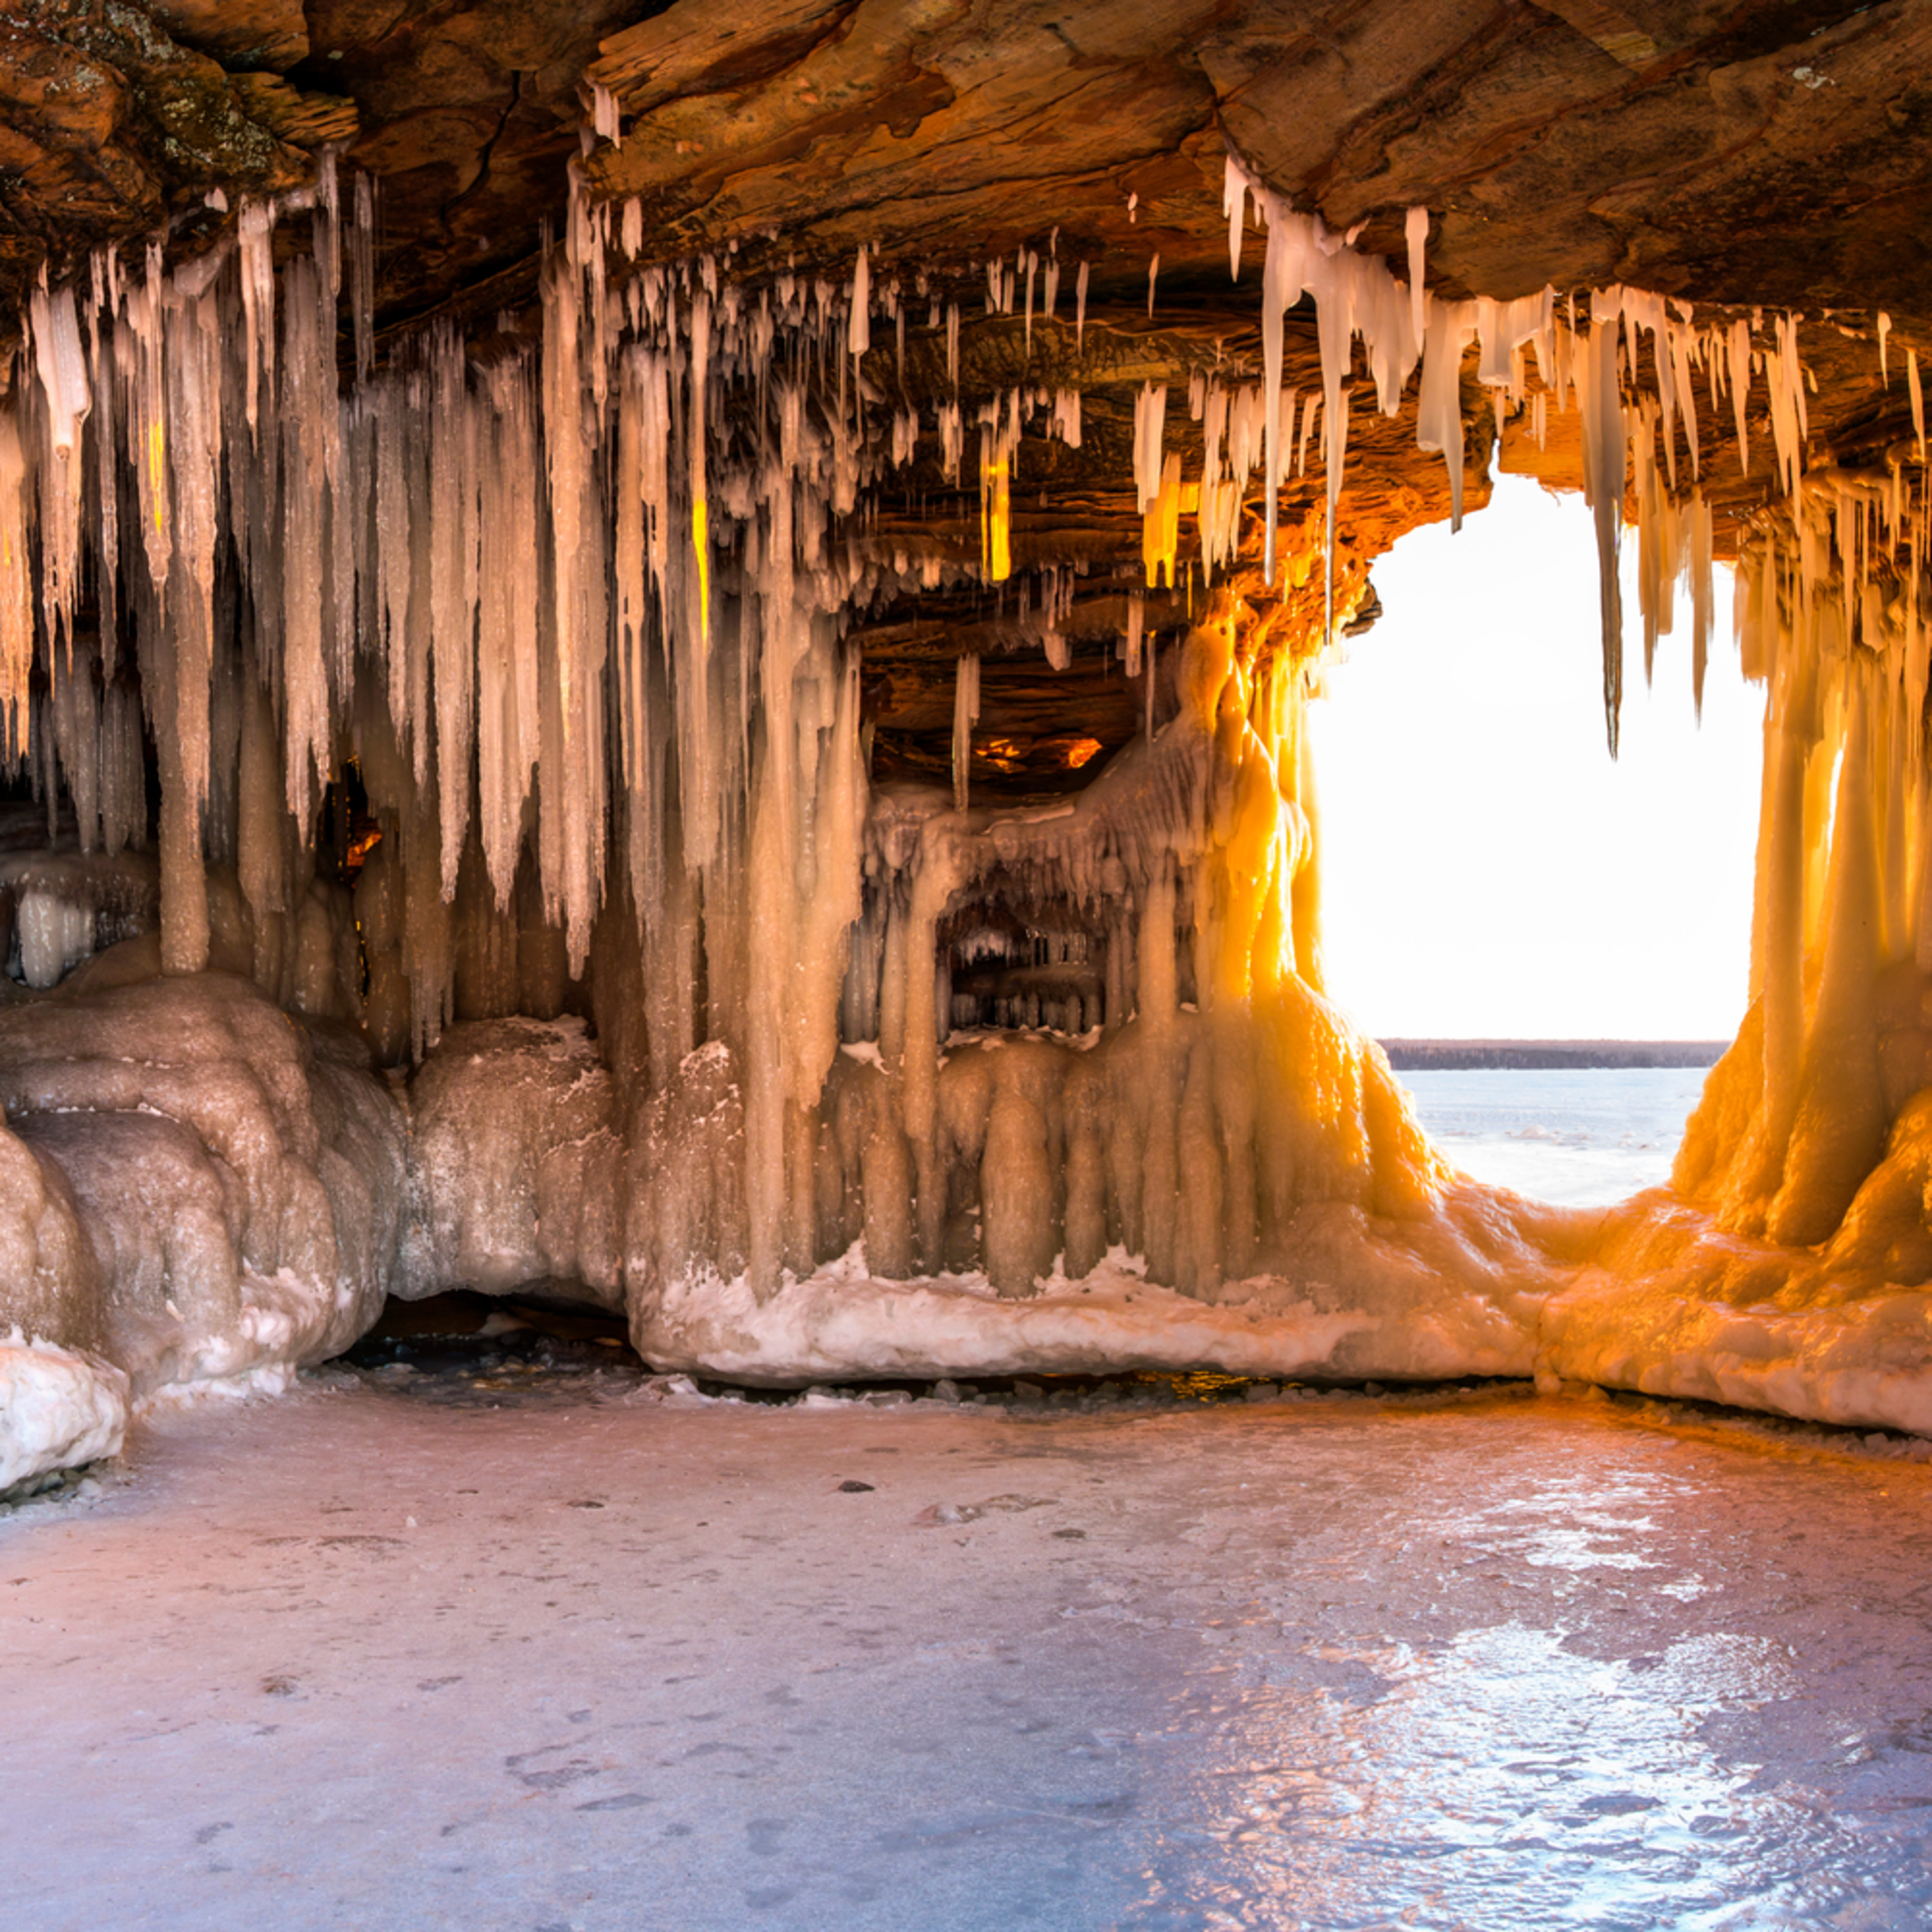 Ice caves wzrluq